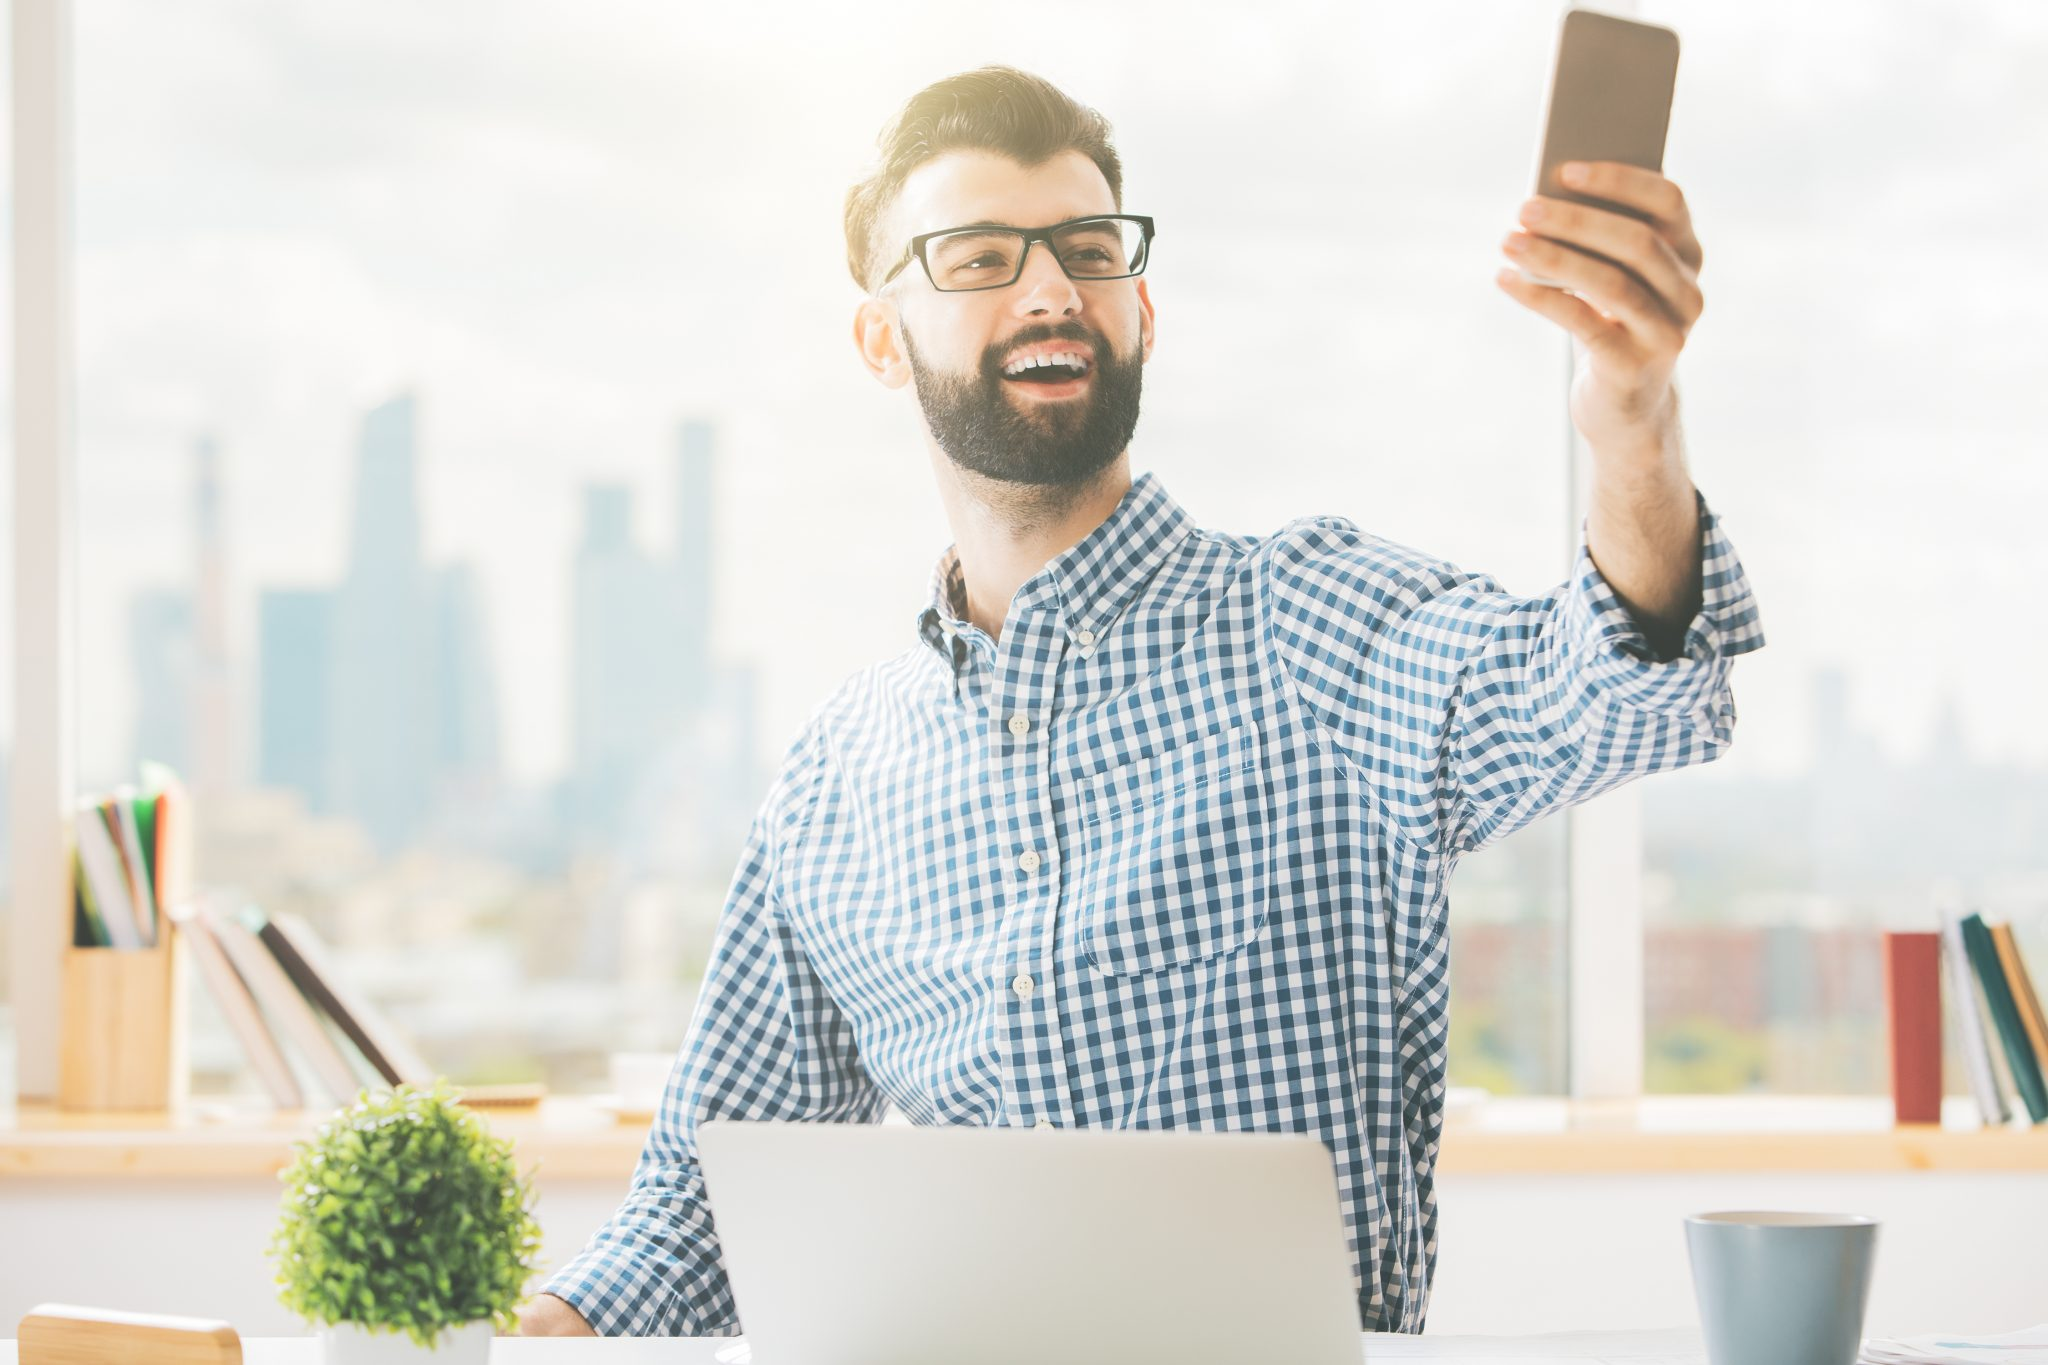 Casual male using cellphone